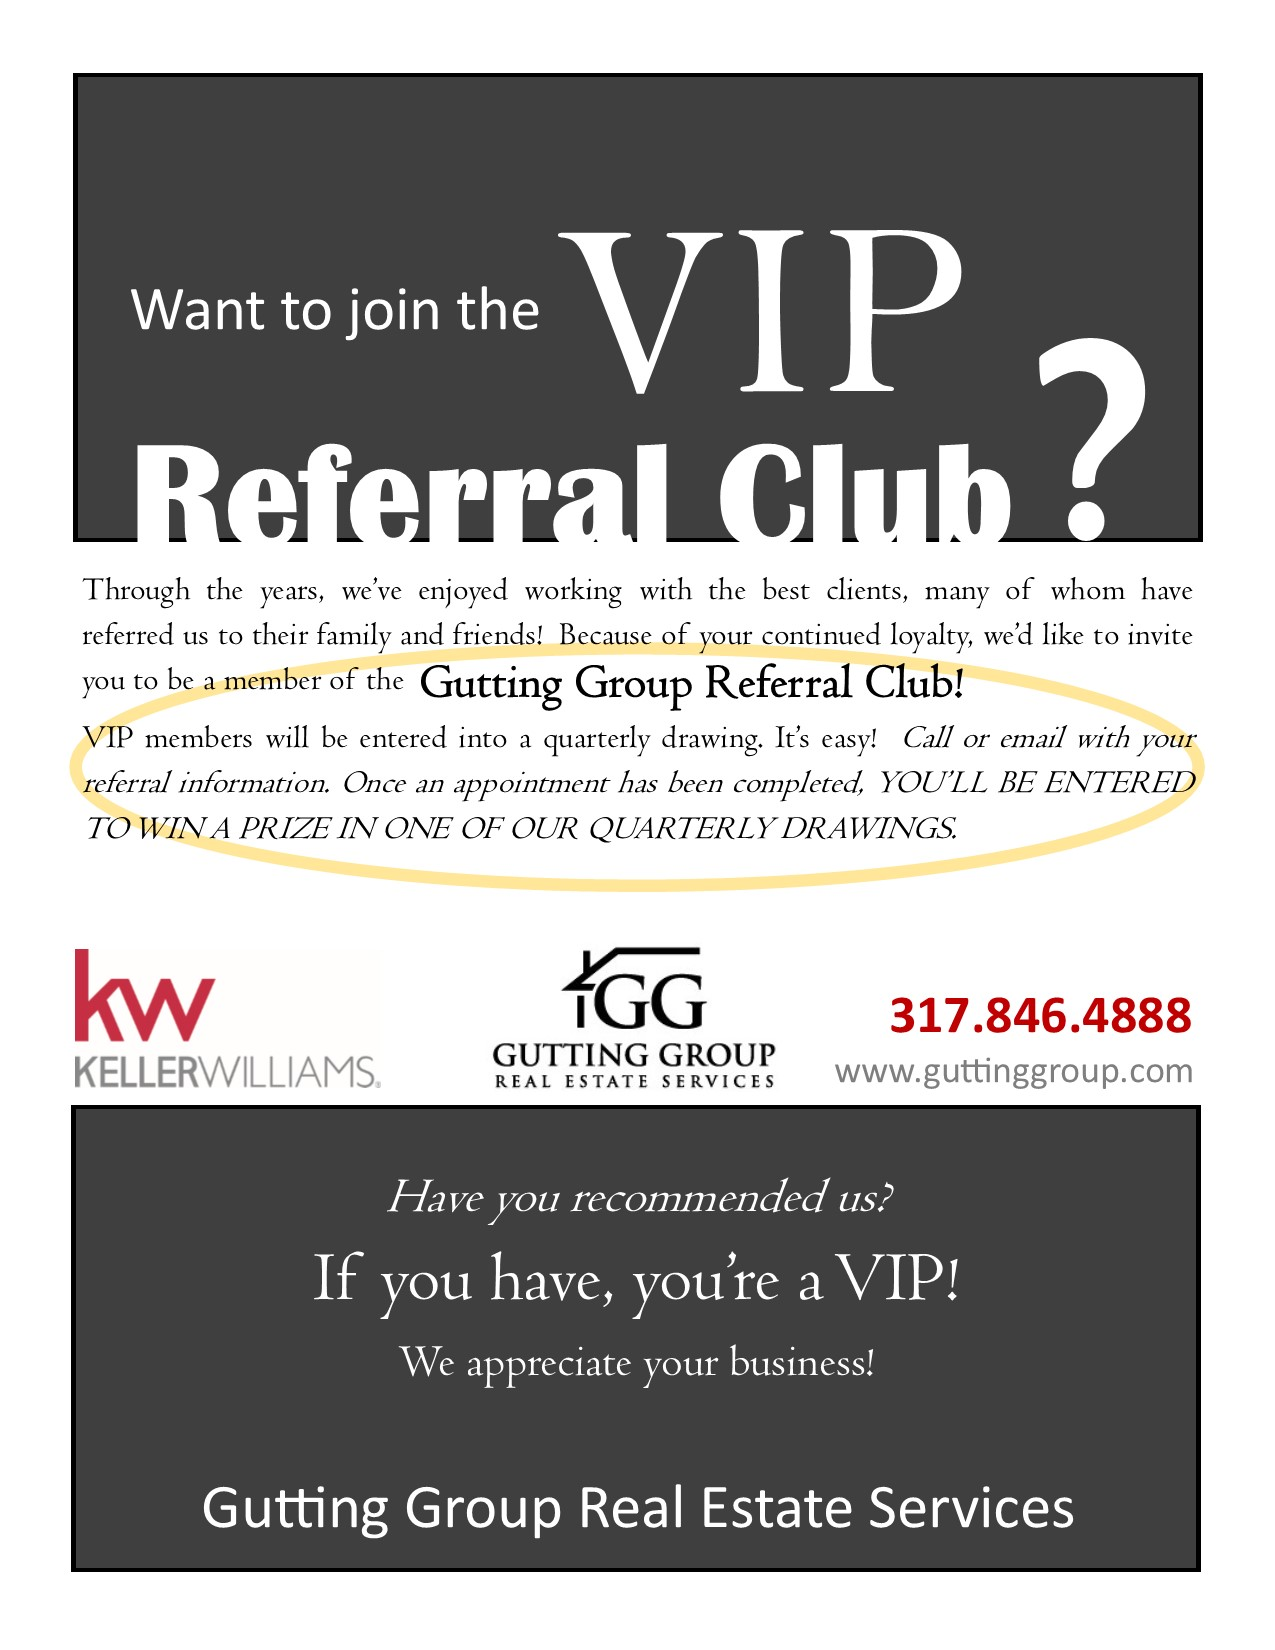 VIP Referral club 2017 full page.jpg